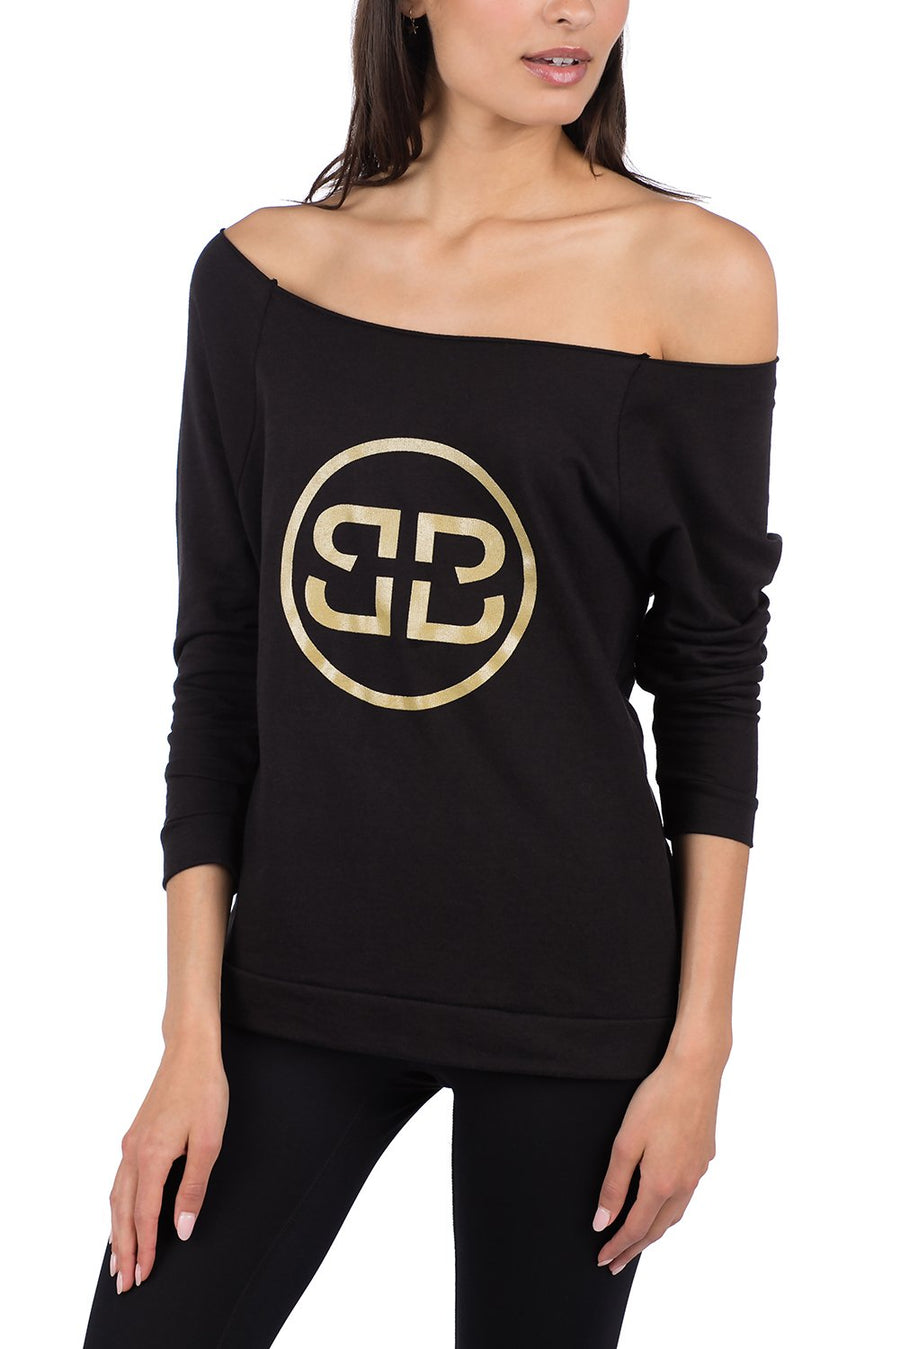 GOLDEN DOUBLE B 3/4 RAGLAN SWEATSHIRT